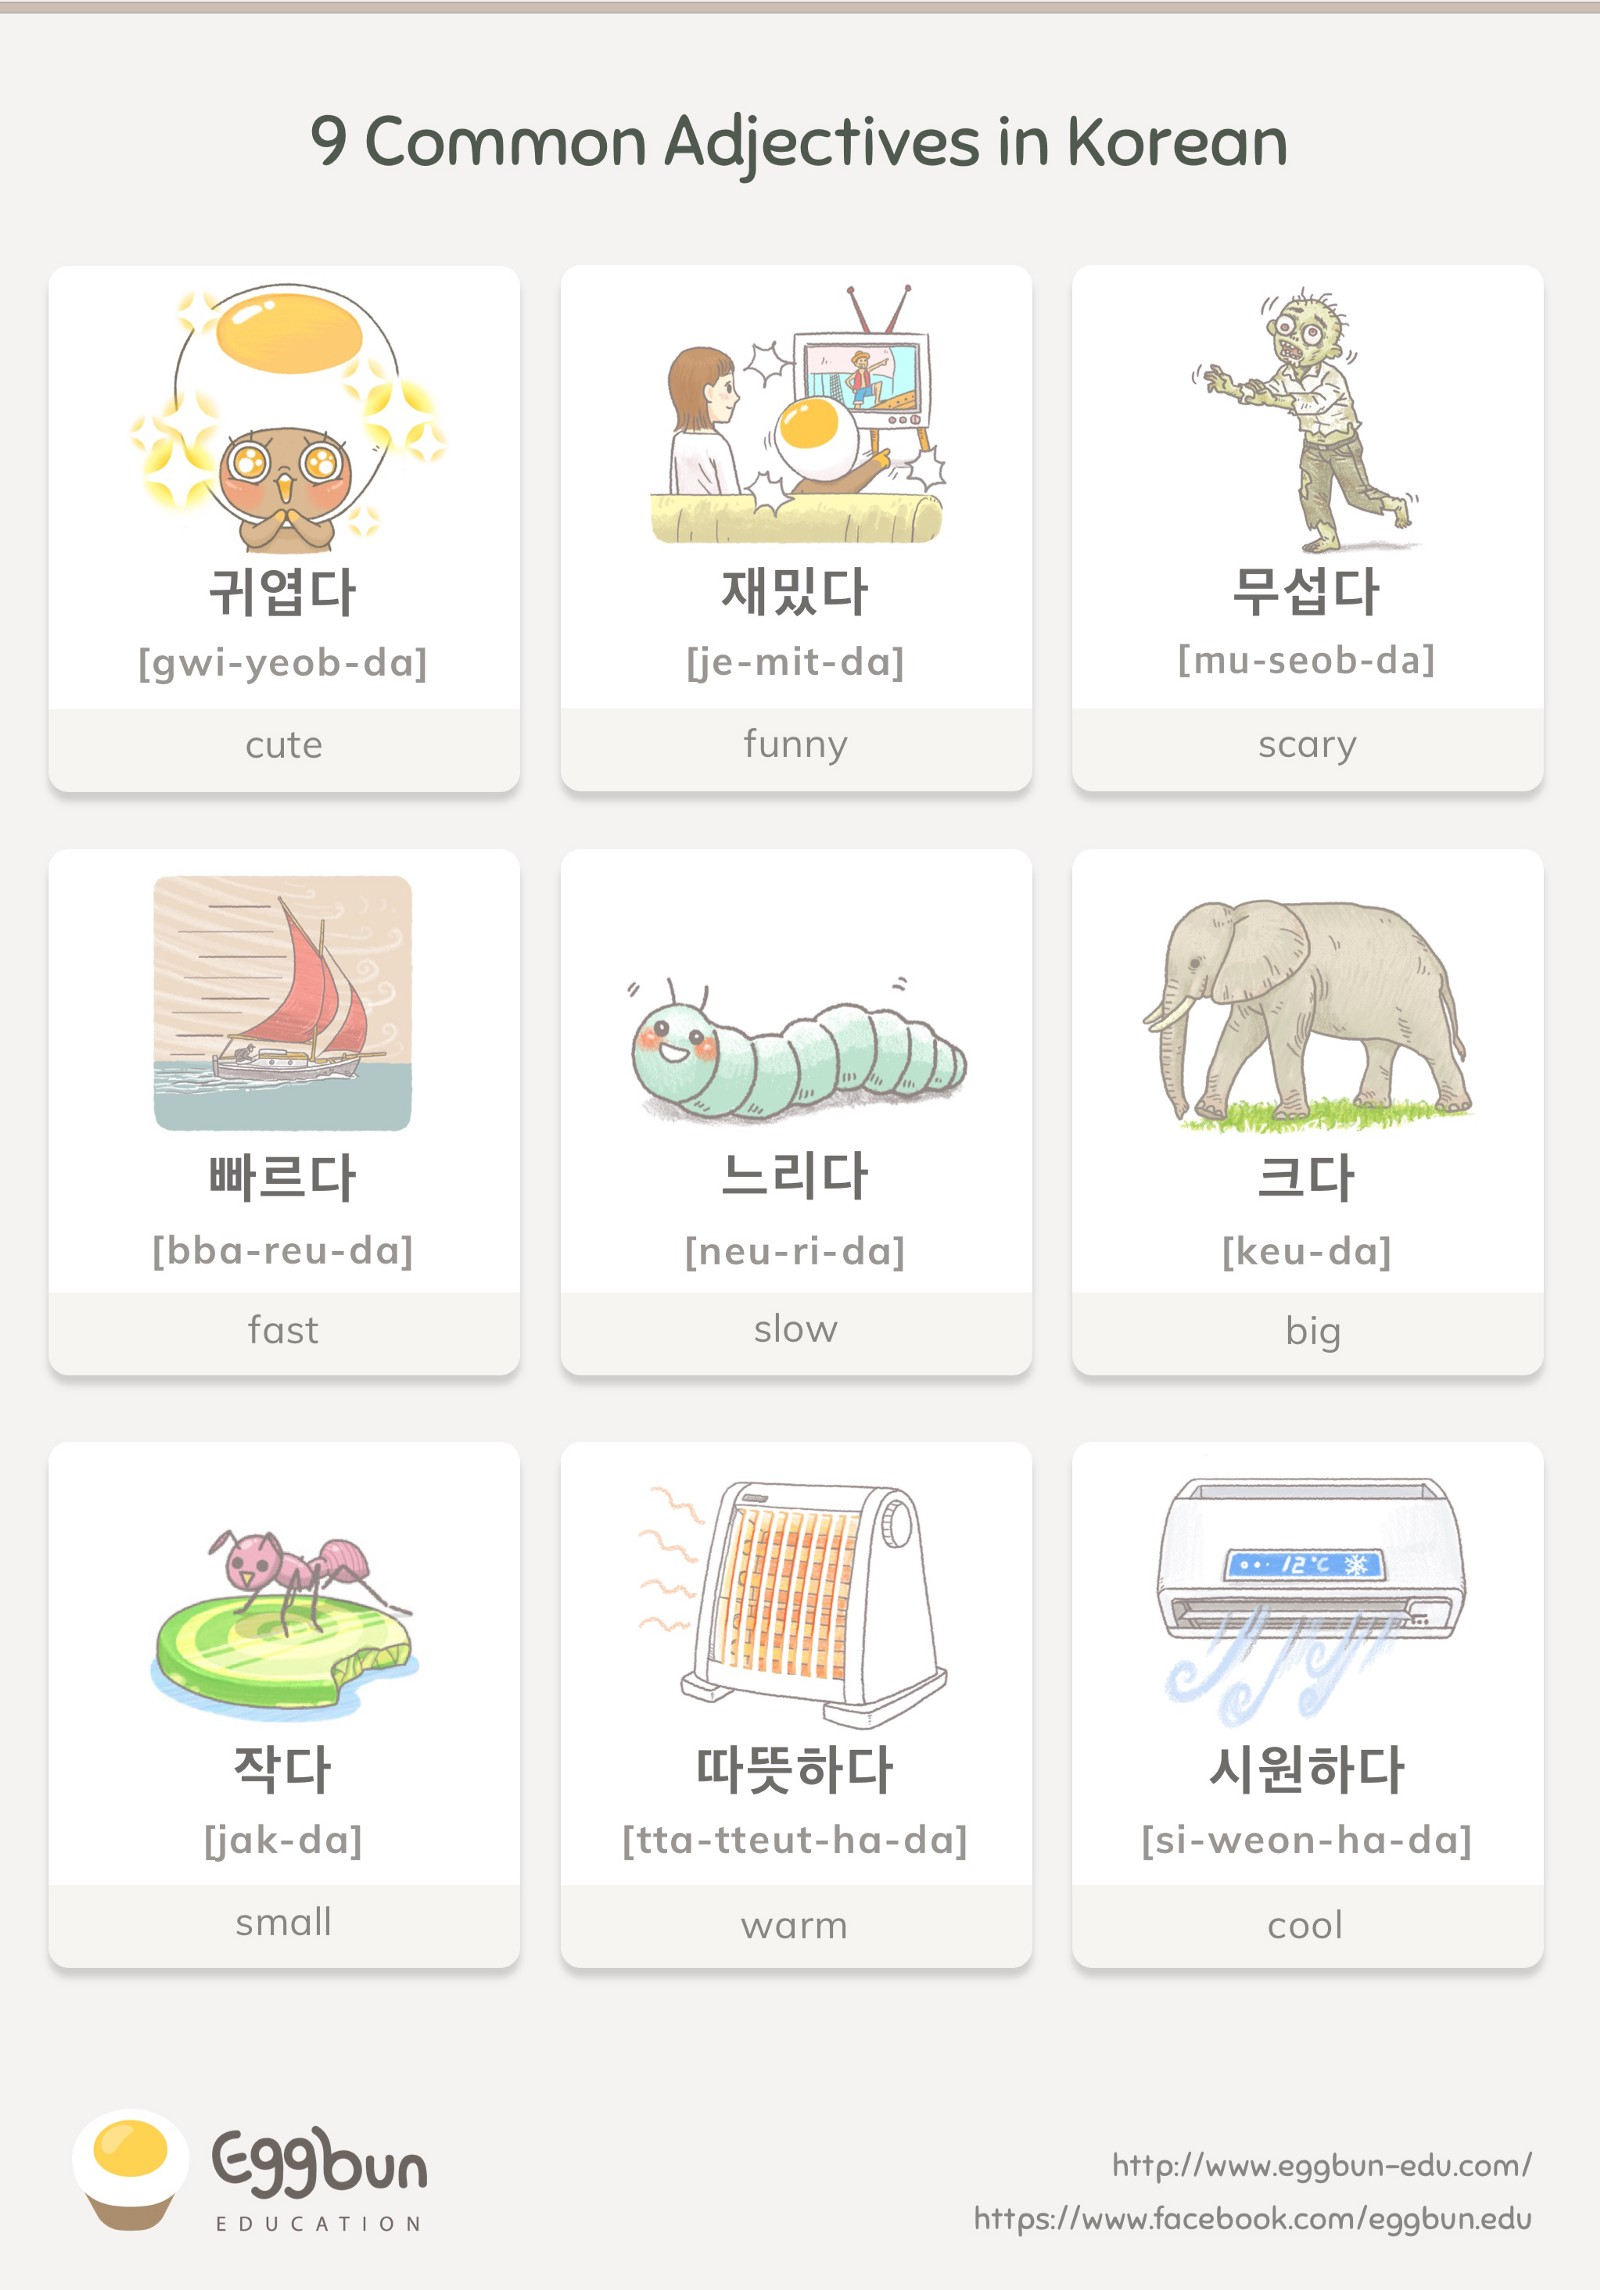 9 Common Adjectives In Korean Story Of Eggbun Education